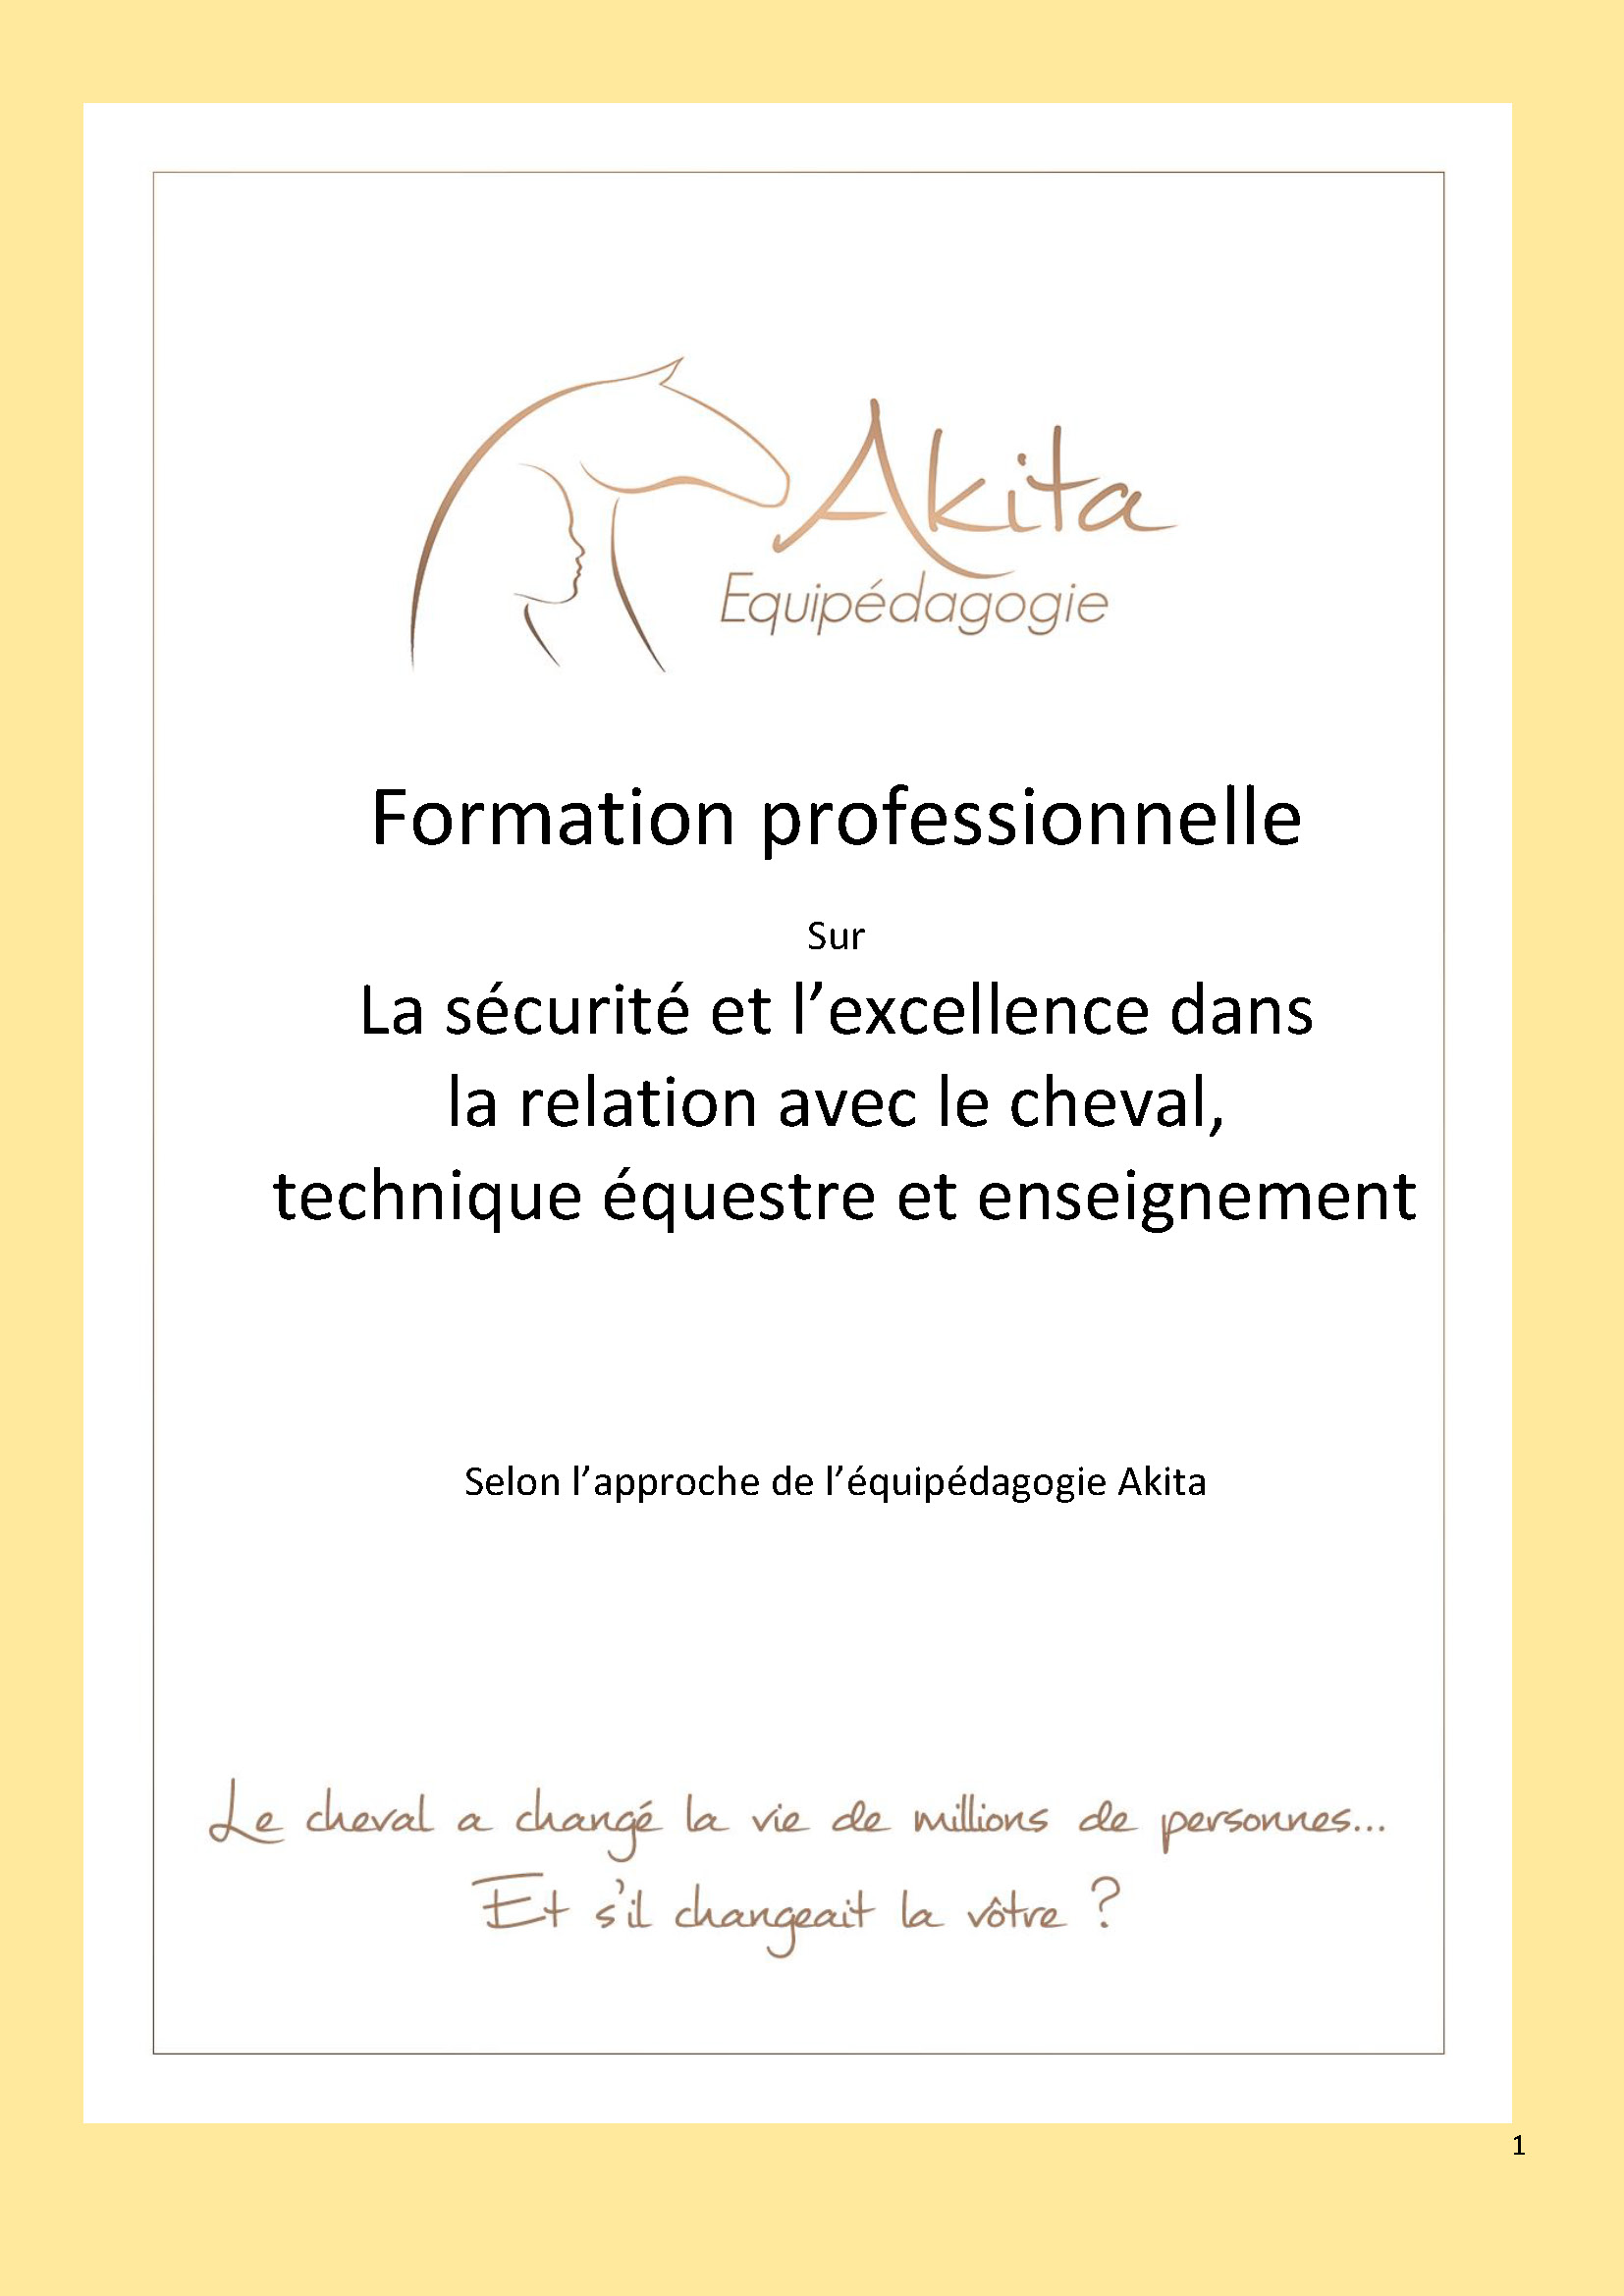 Akita Equipedagogie - Formation professionnelle